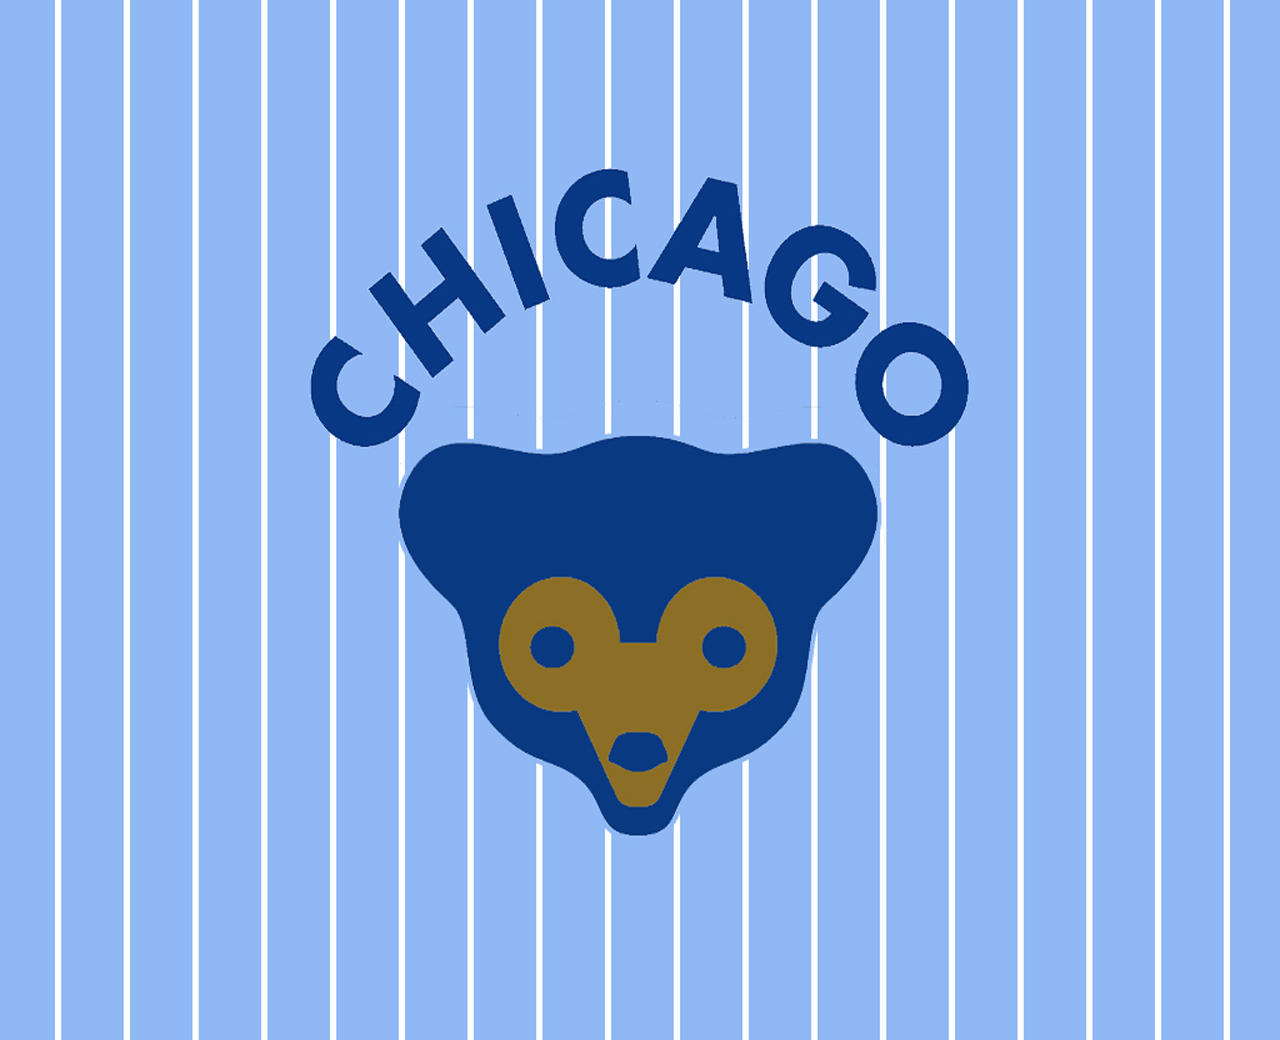 Chicago Cubs Browser Themes Wallpaper More for the Best Fans in 1280x1040